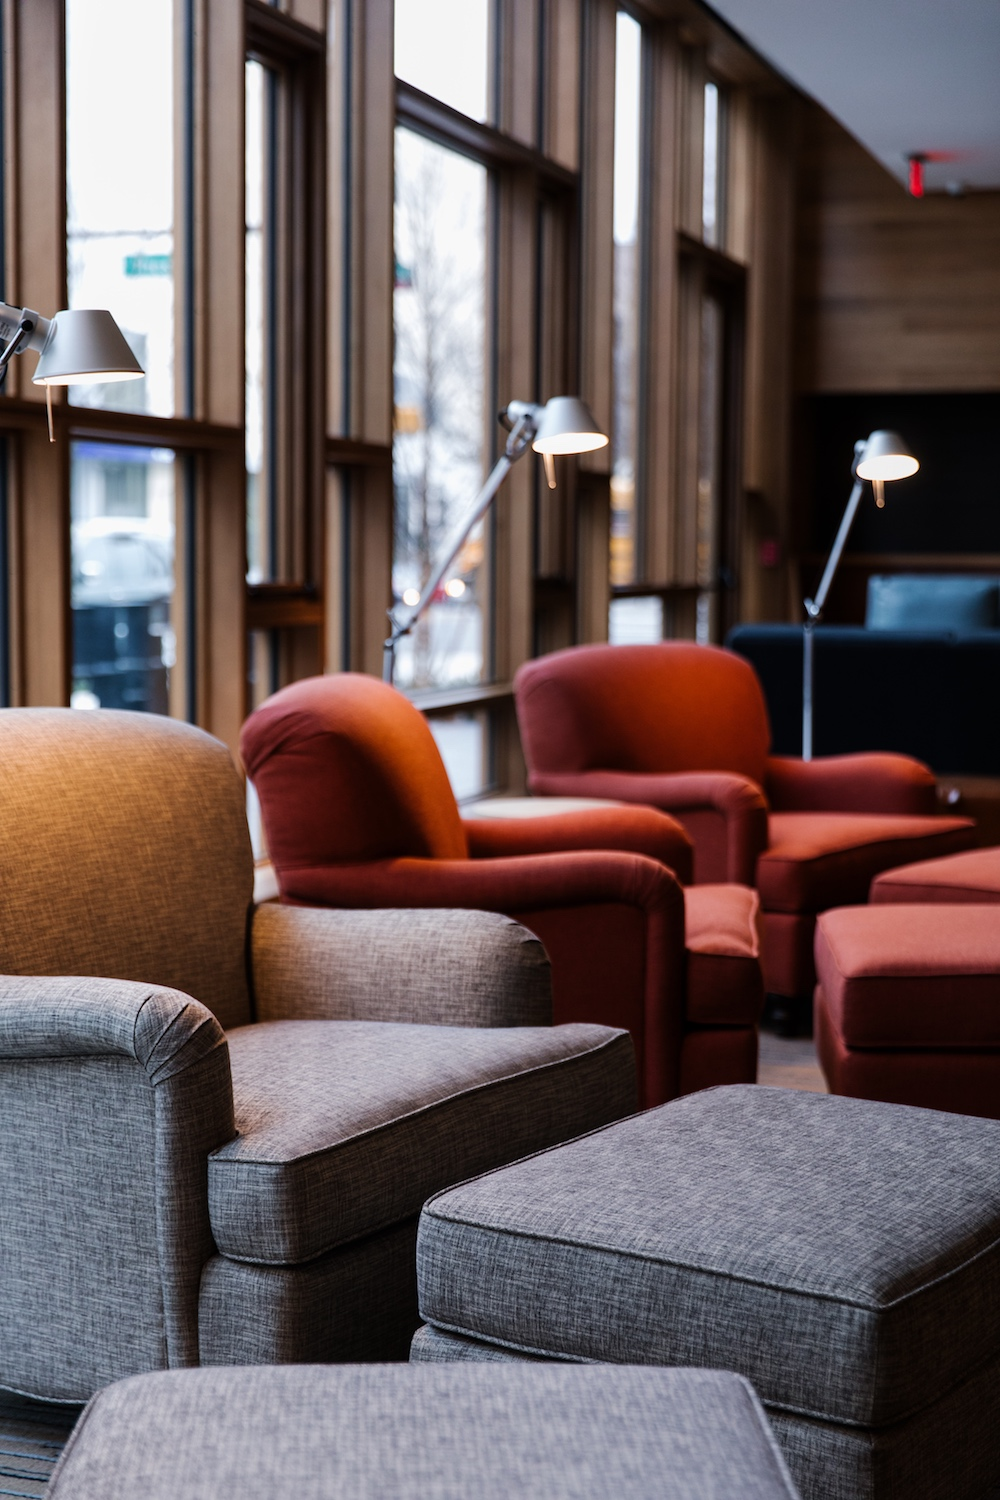 The lobby is cozy with couches and chairs to sit back while you enjoy a book from the selection they offer for guests to read - - T.A. Review